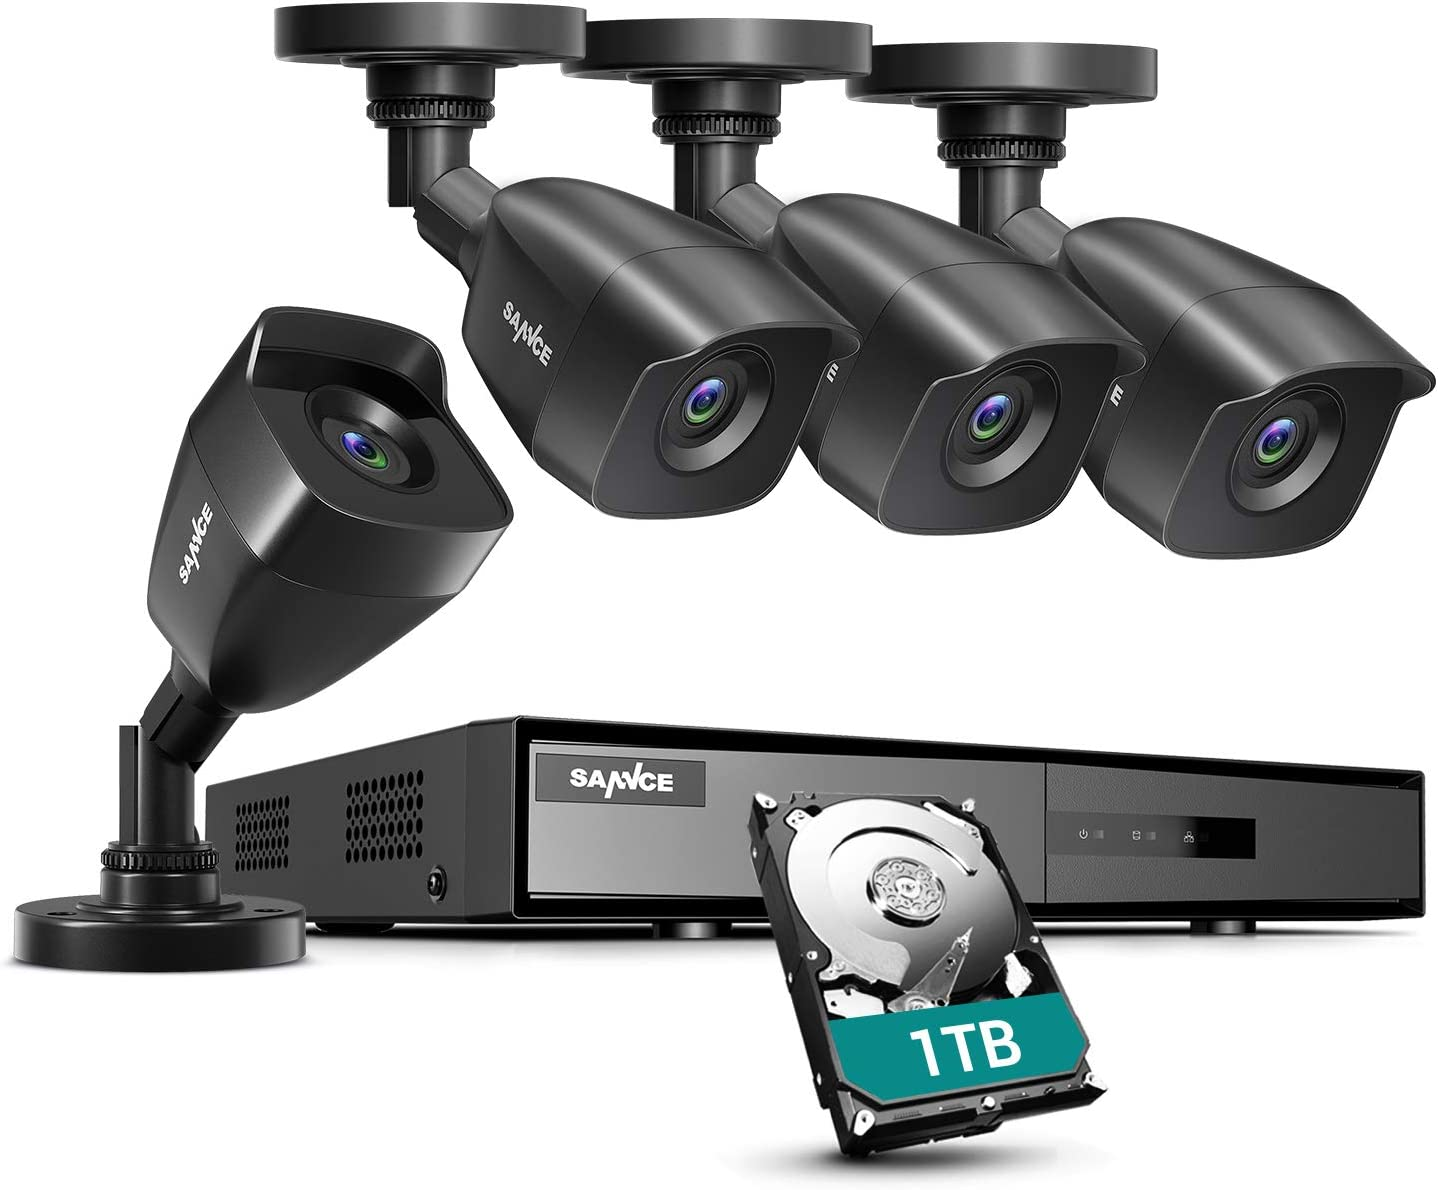 SANNCE 8CH 1080P Lite DVR Security Camera System with 1TB Hard Drive and (4) 1080P Night Vision Surveillance Cameras, IP66 Weatherproof , P2P Technology/E-Cloud Service, QR Code Scan Remote Access